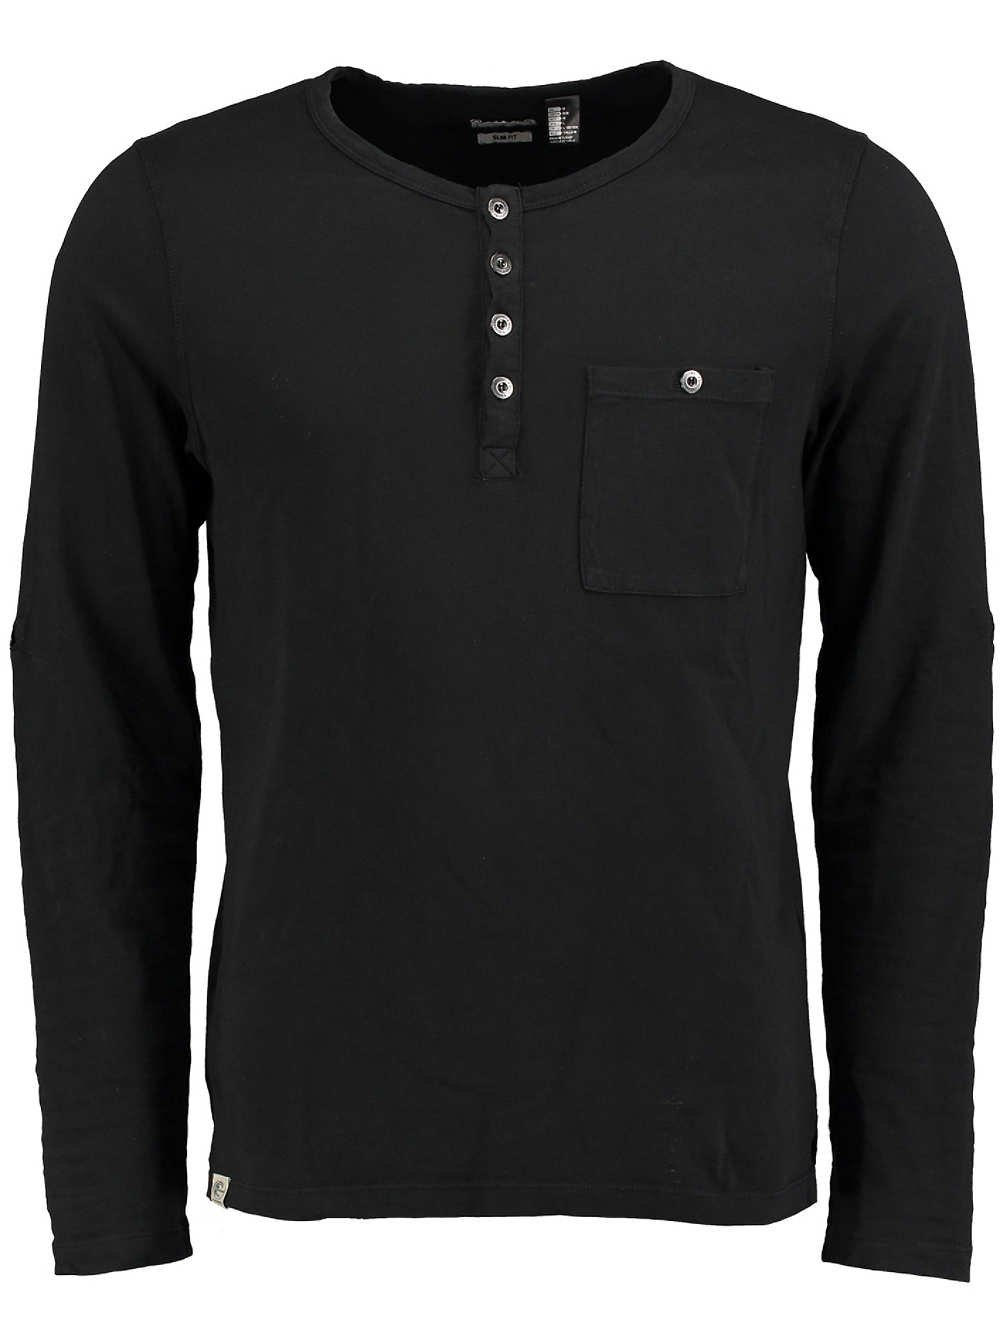 O'Neill Lm Originals Henley Men's Long-Sleeved T-Shirt